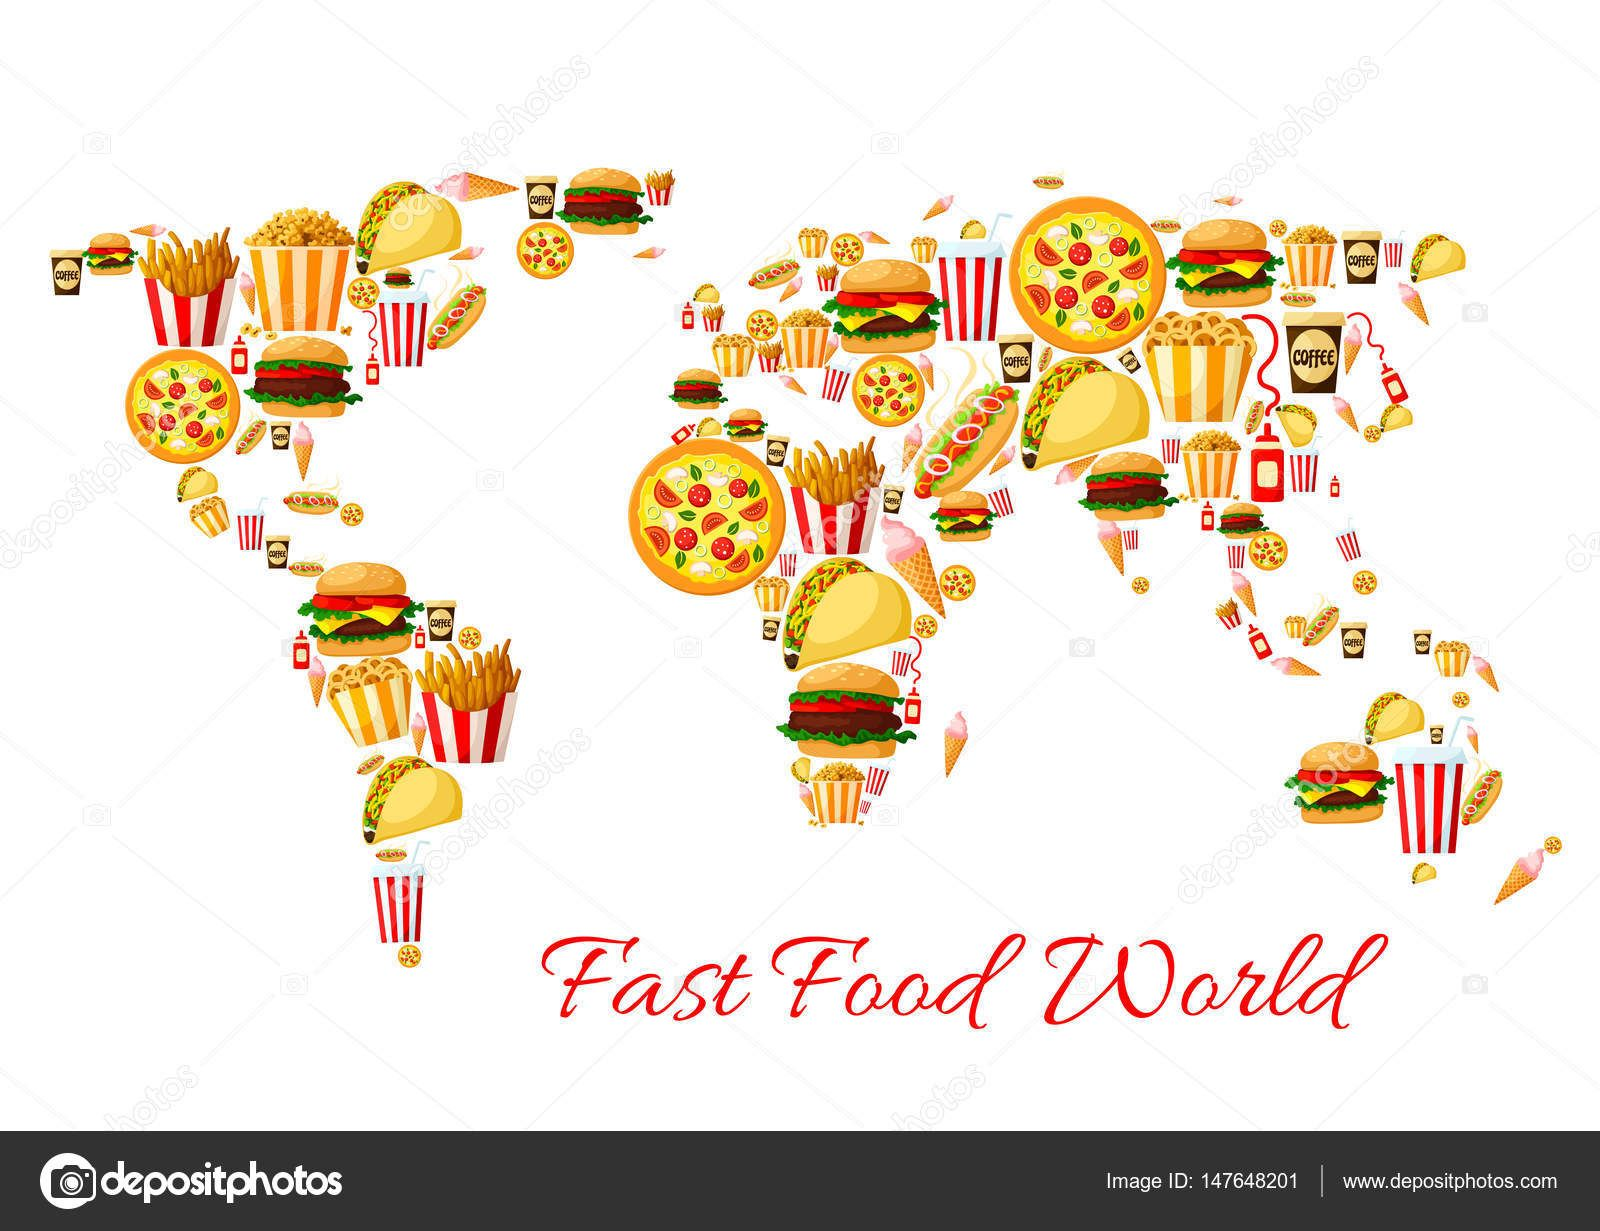 Download fast food world map cartoon poster design stock download fast food world map cartoon poster design stock illustration gumiabroncs Images